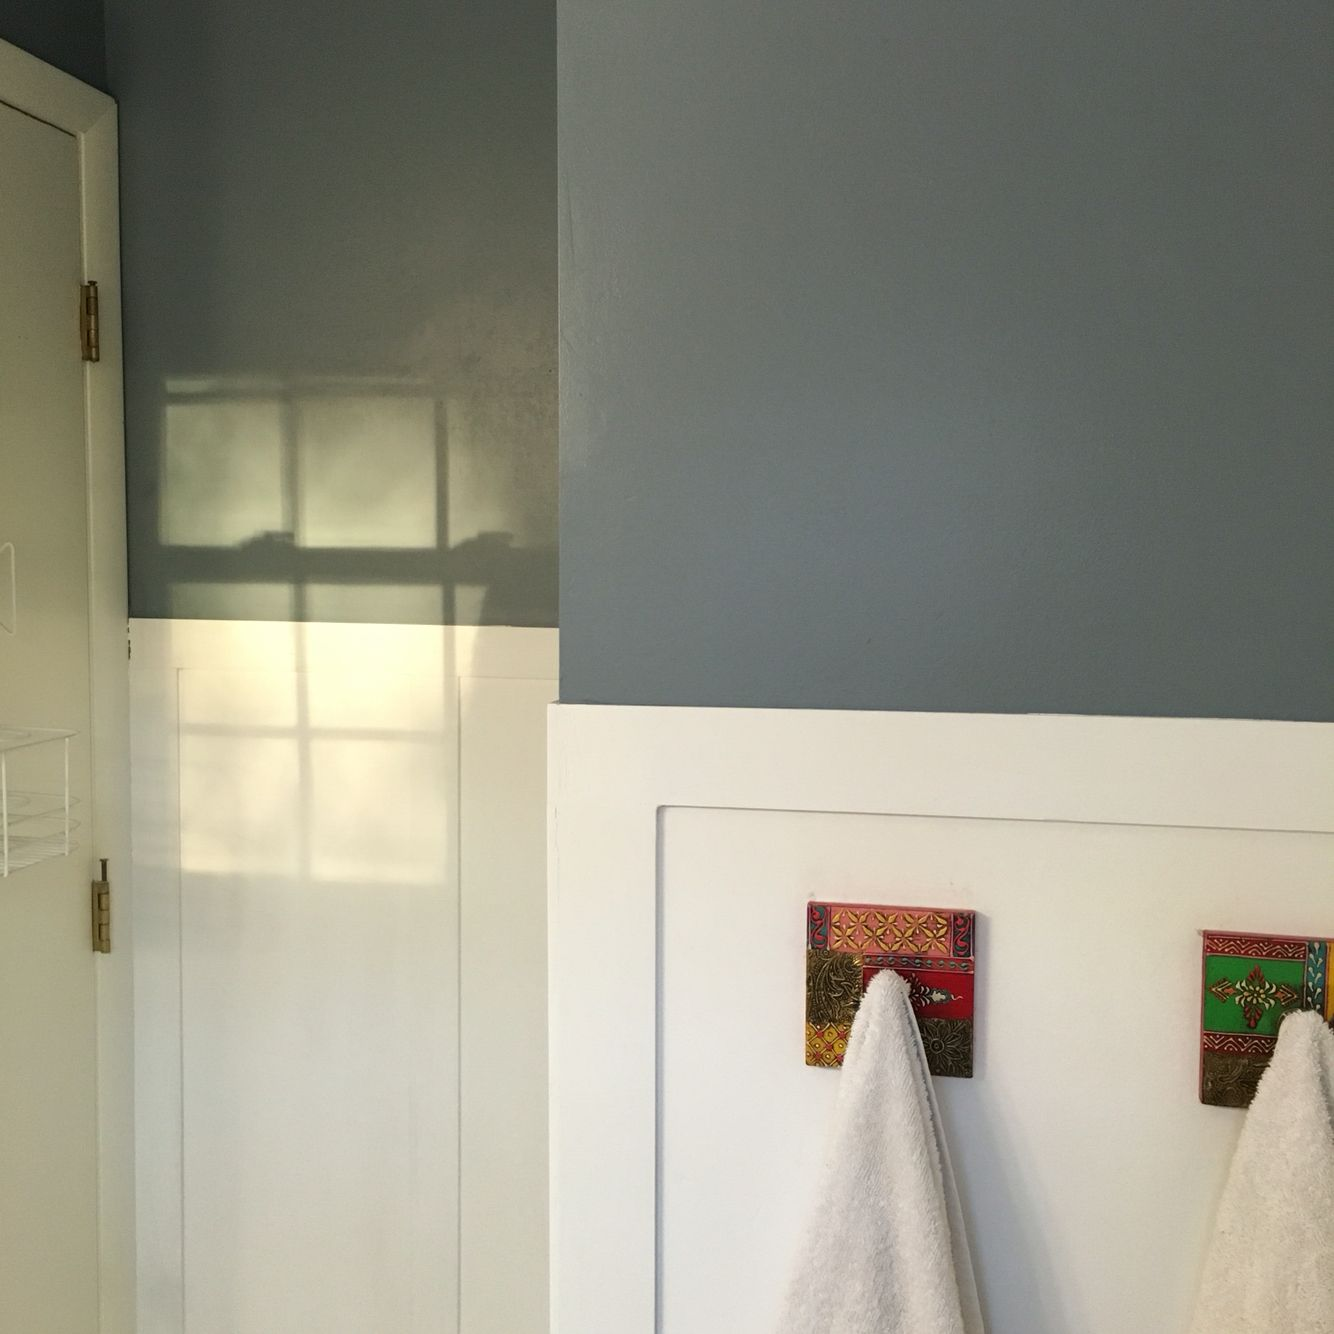 Sherwin williams paint colors sherwin williams 6249 storm cloud - Hgtv By Sherwin Williams Paint In Nevermore Grey